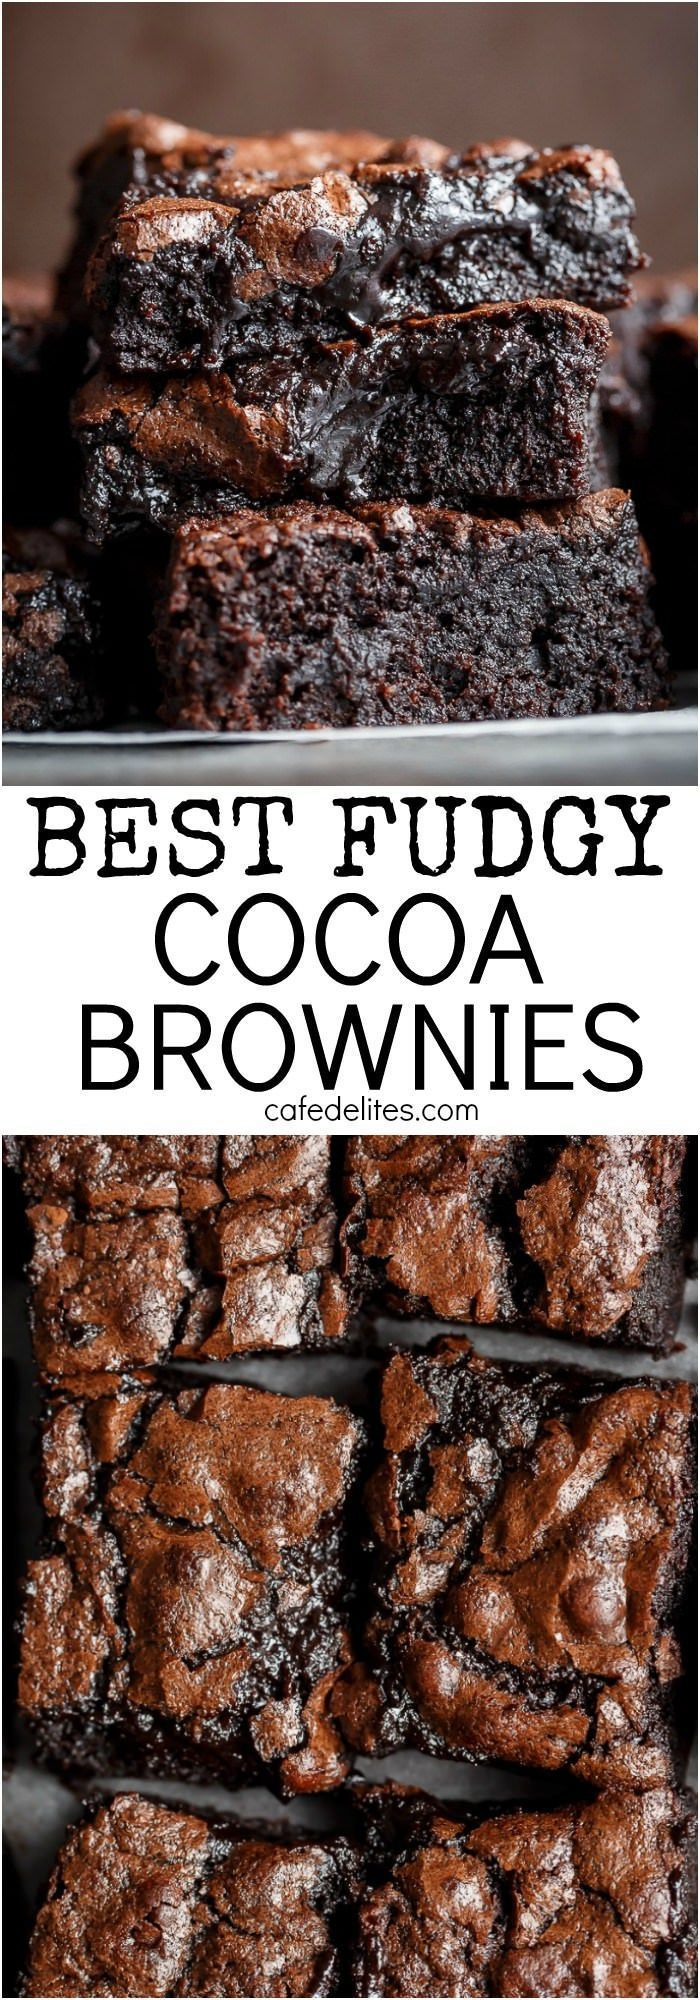 Meilleurs Brownies au Cacao Fudgy   - Things I want to cook -